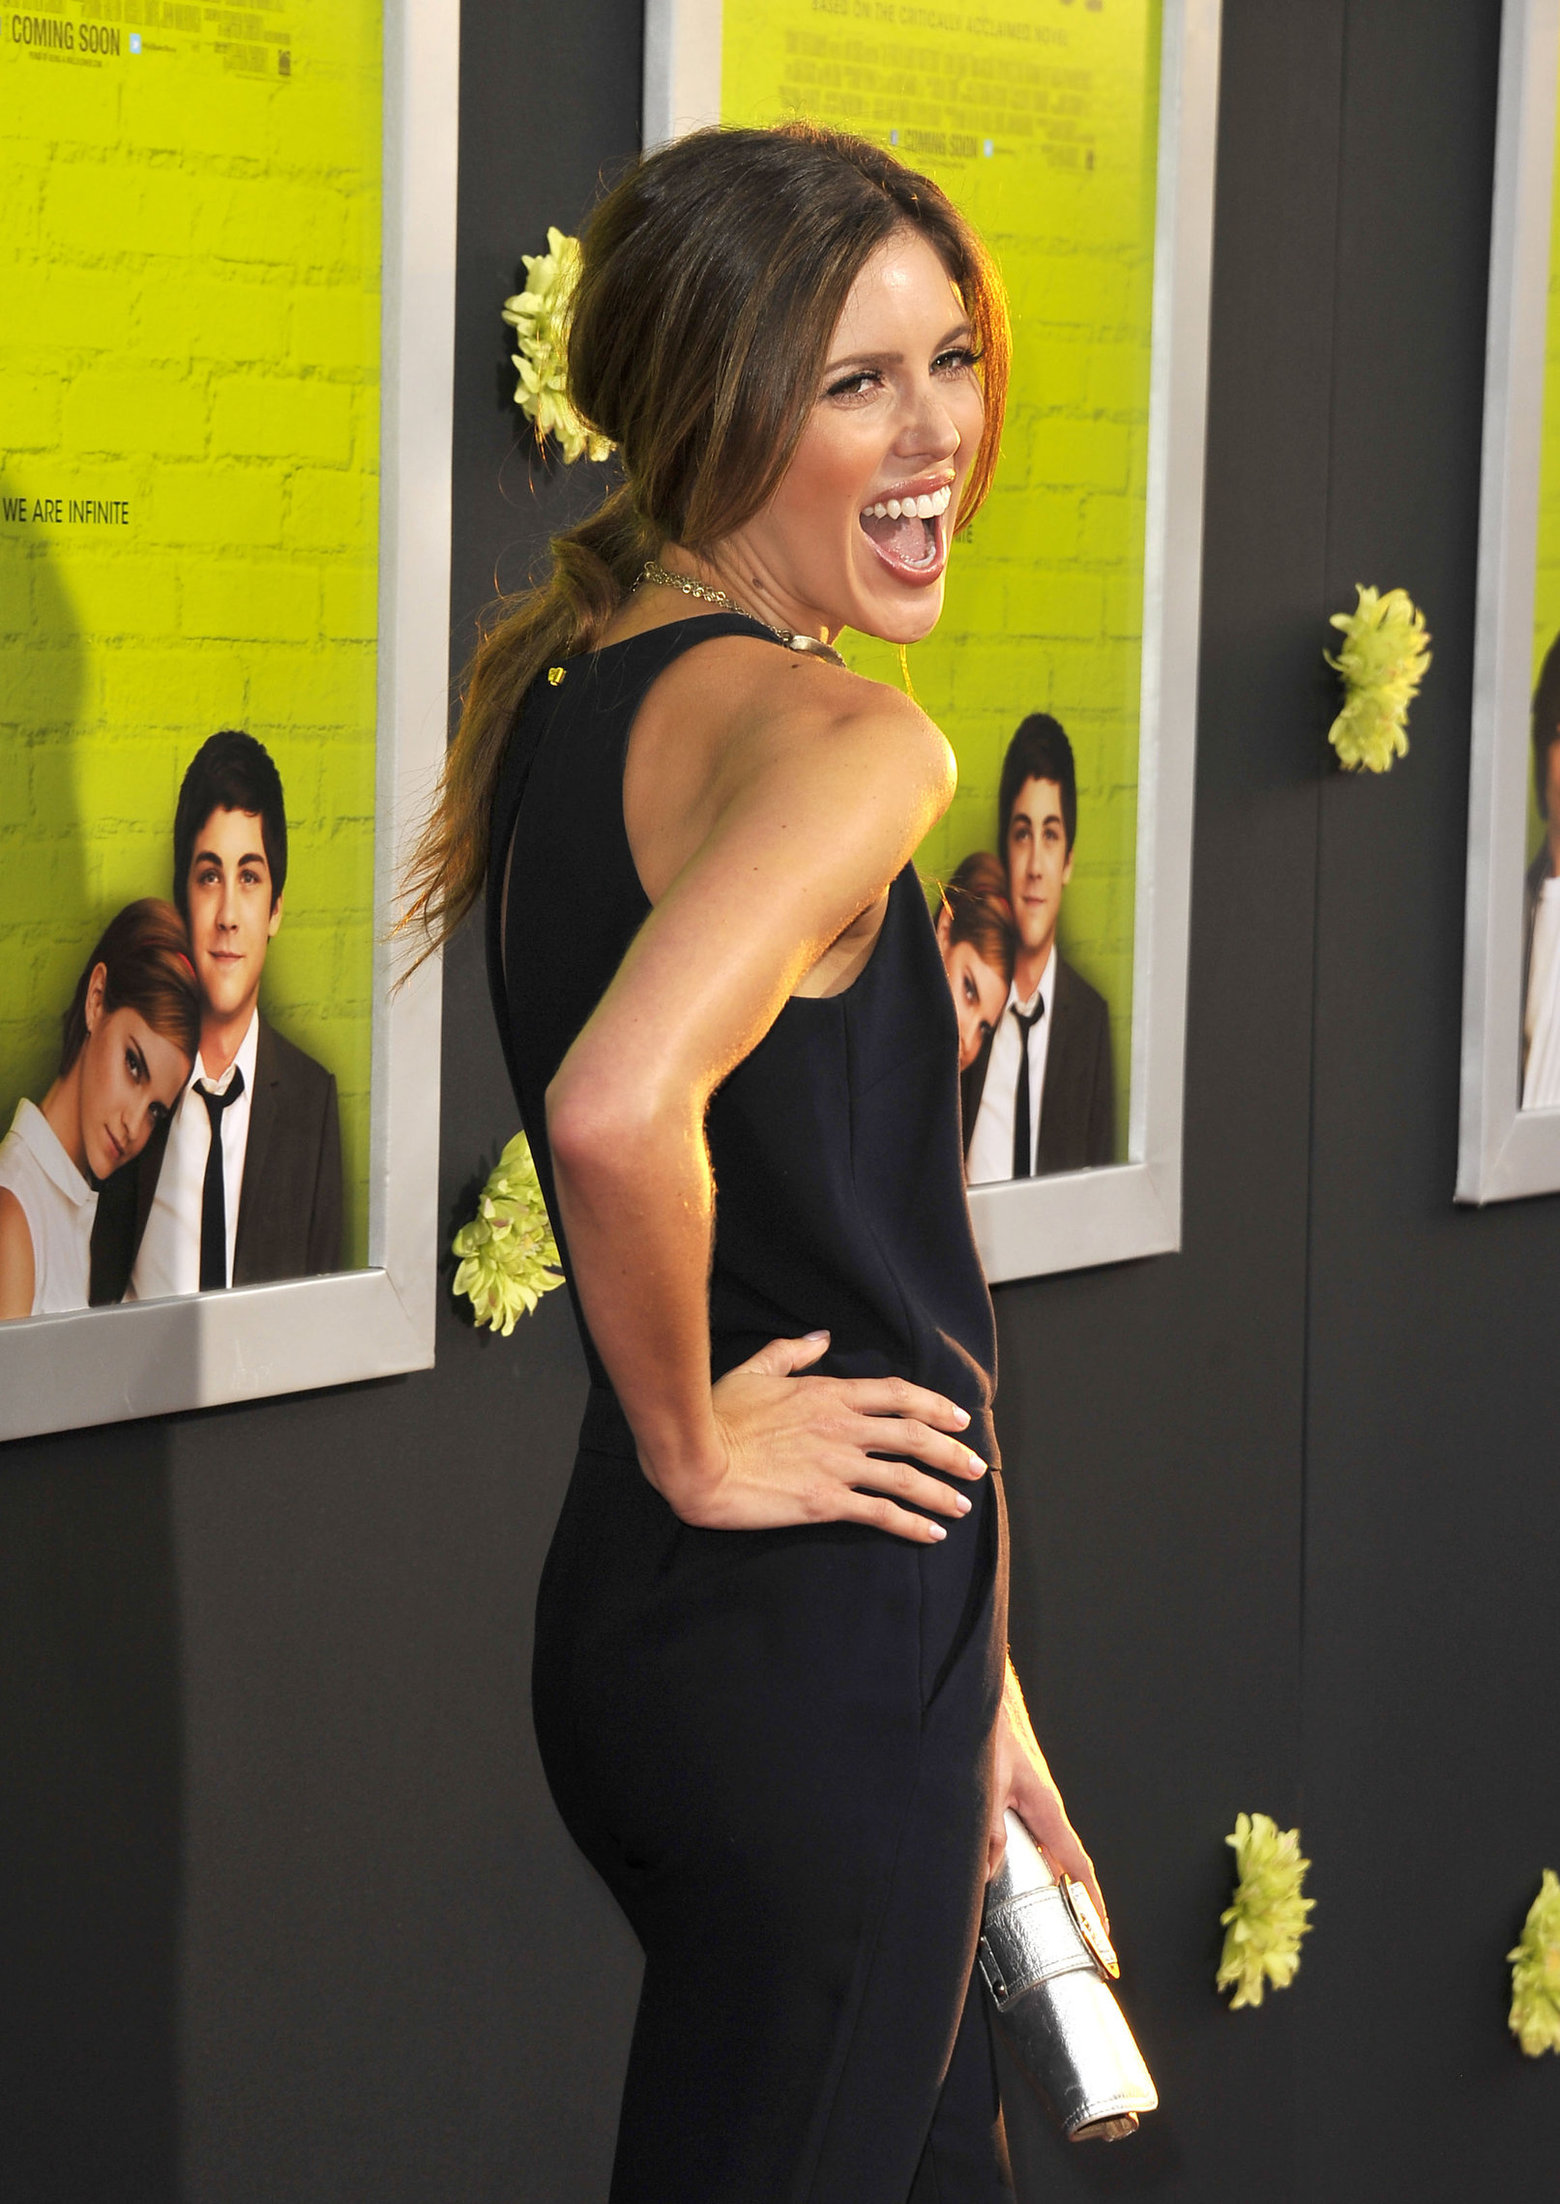 Kayla Ewell - The Perks Of Being A Wallflower Premiere in Los Angeles - September 10, 2012